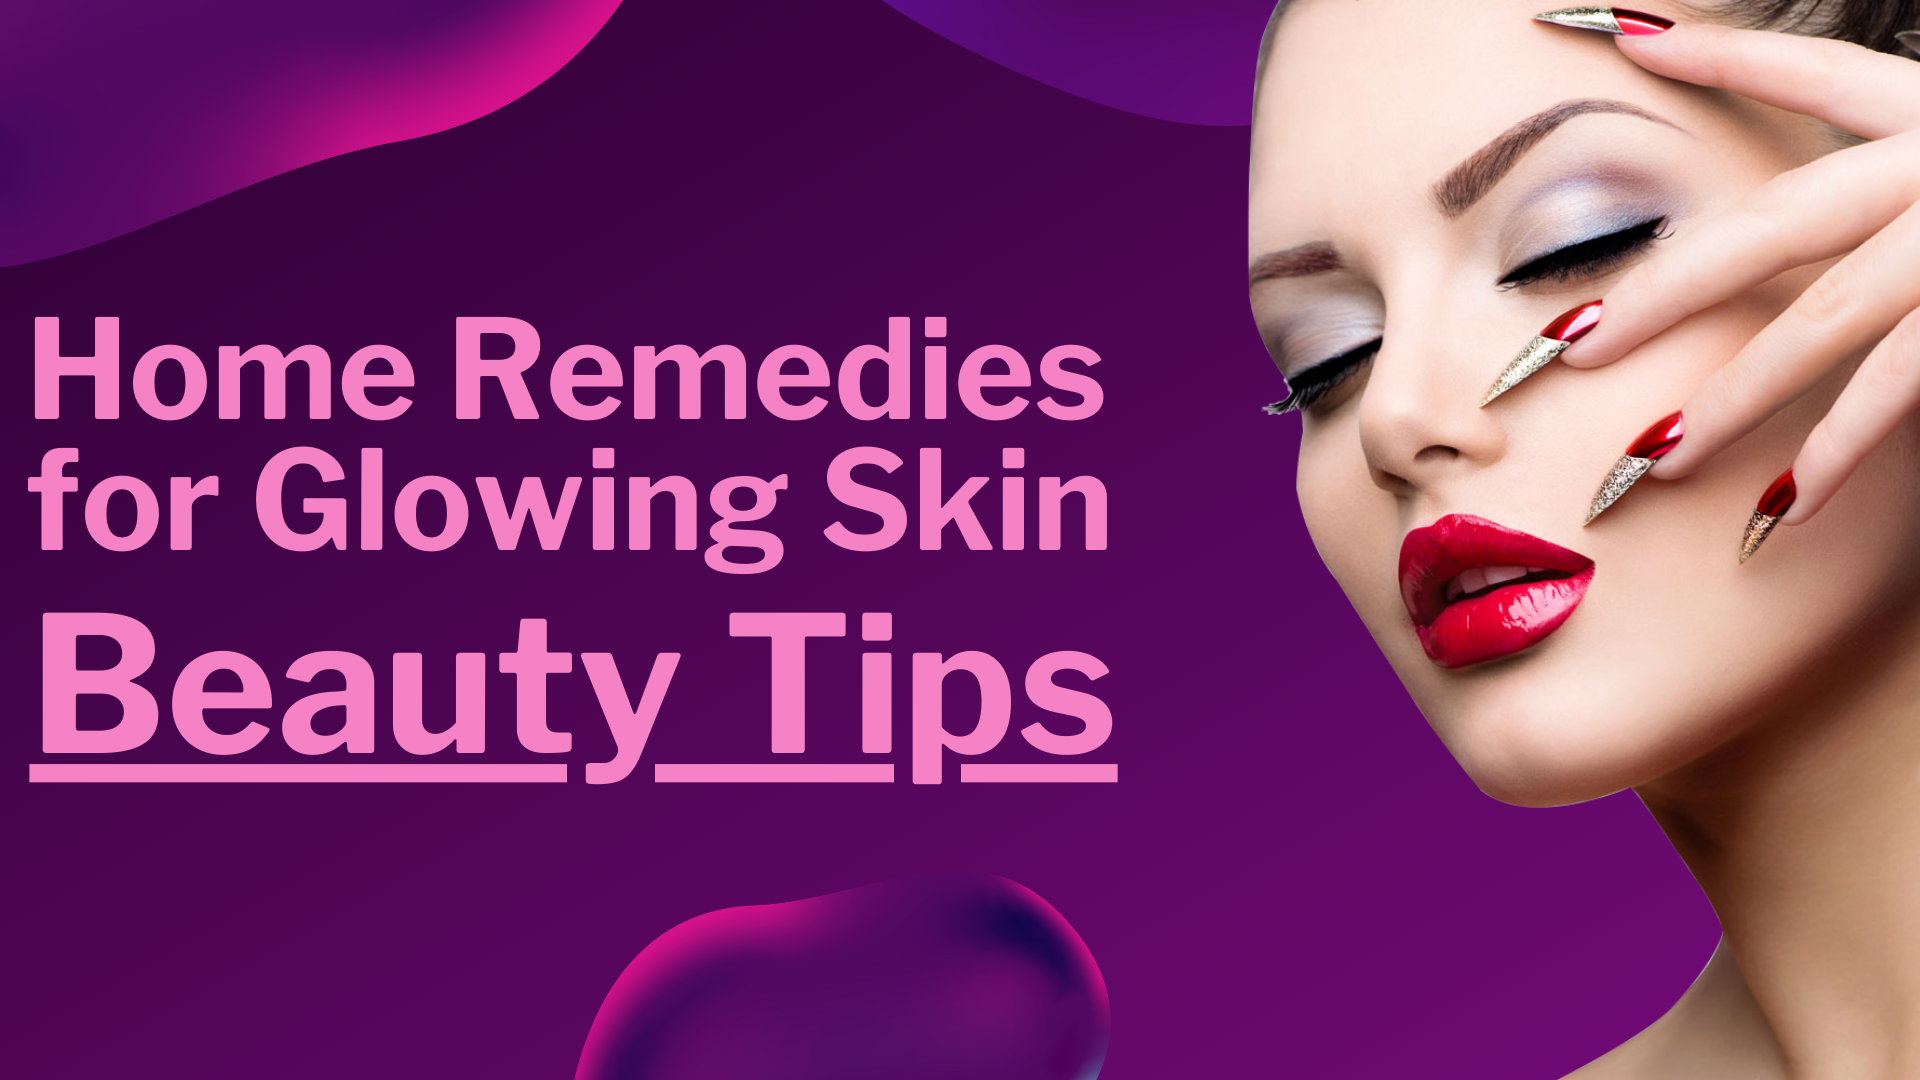 Home Remedies for Glowing Skin — Beauty Tips  by Divya rana  Medium